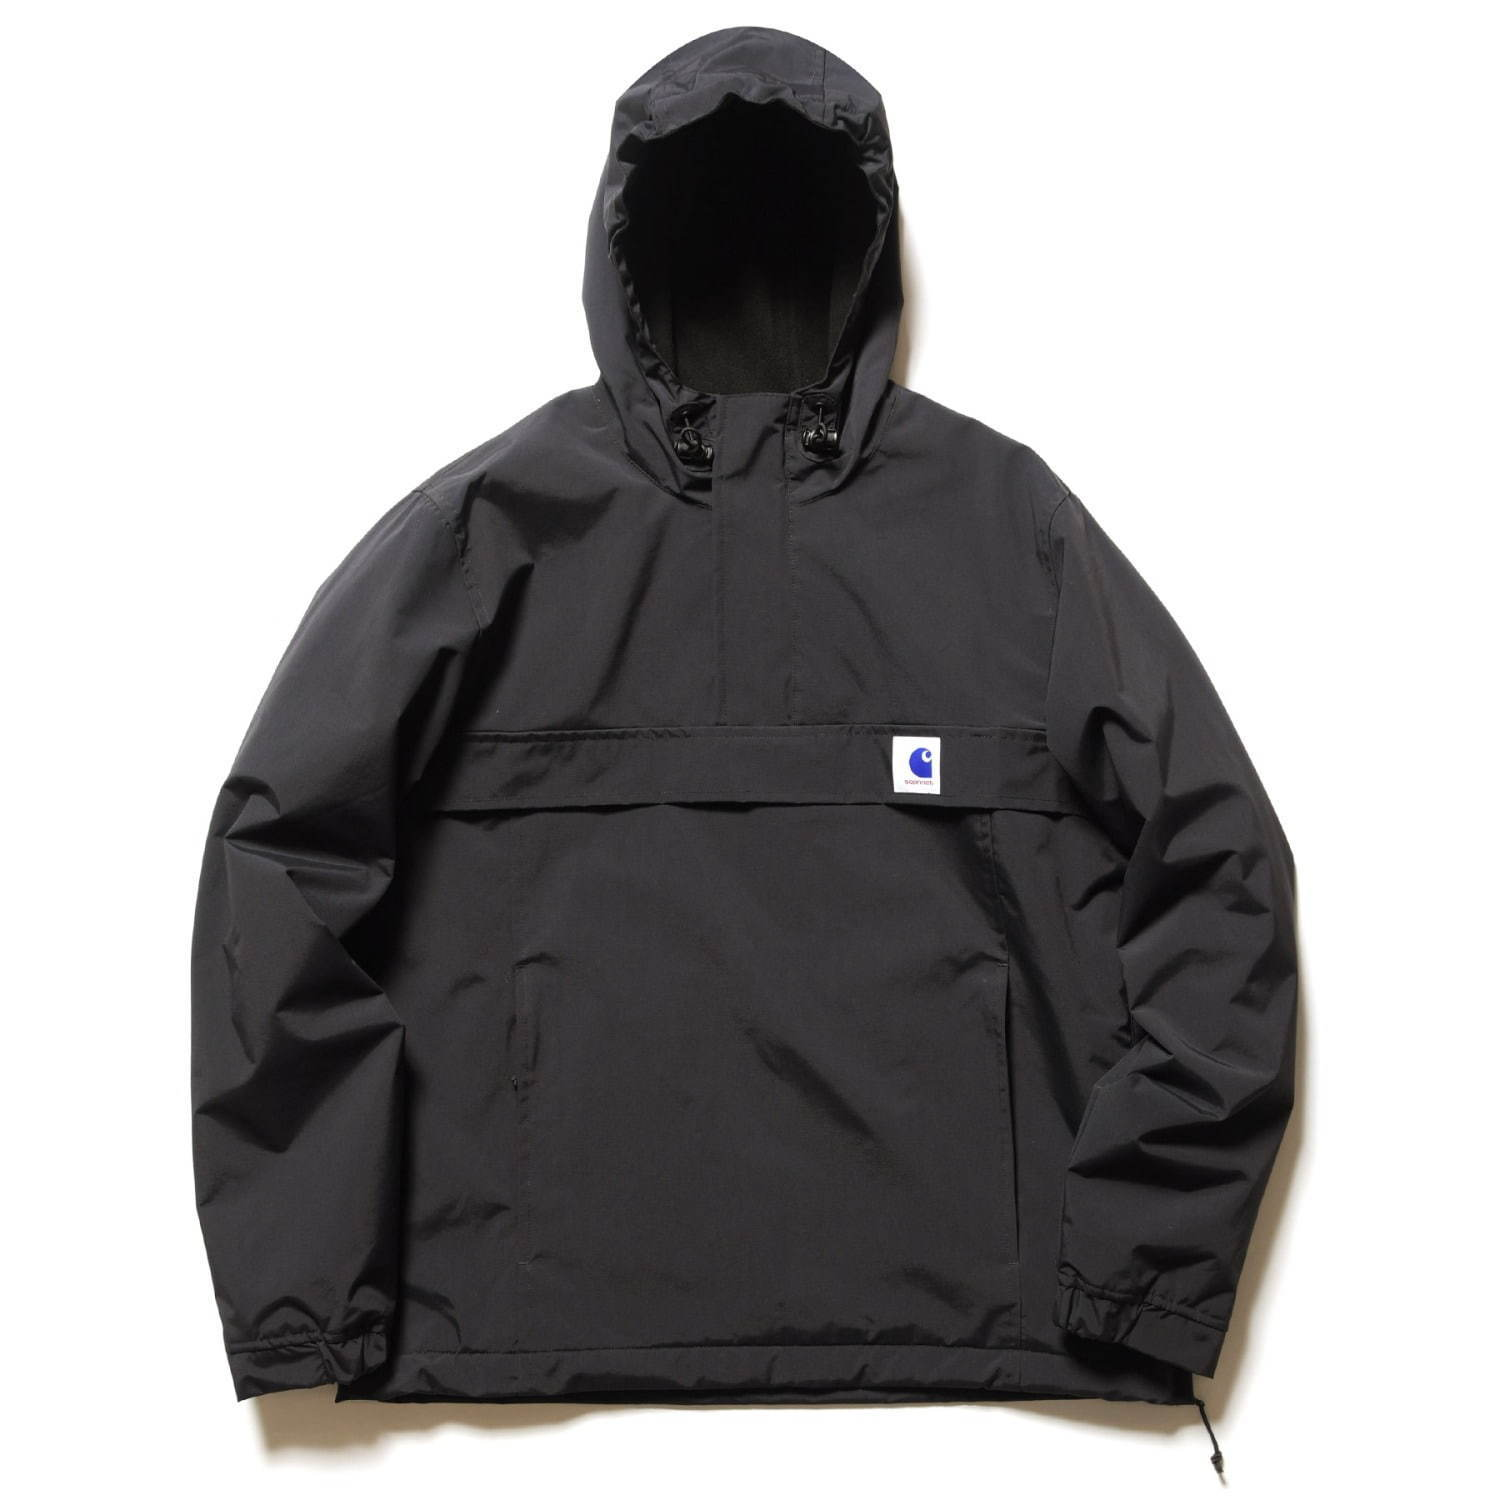 sophnet-carhartt-wip-20th-anniversary-collaboration-item-release-20191102